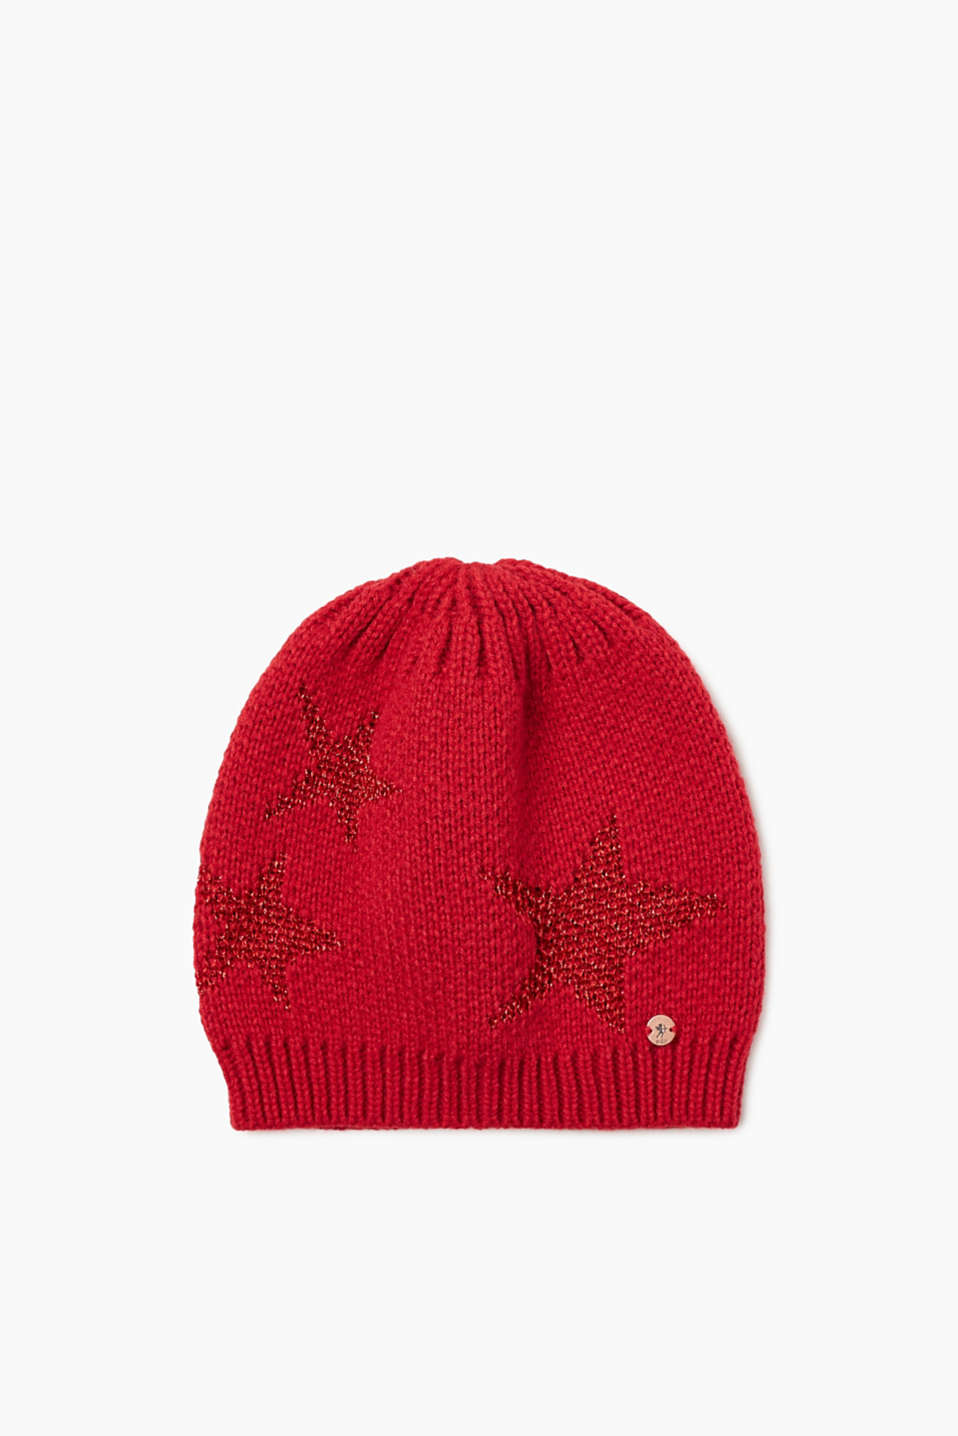 We love knitwear! The shimmering stars makes this beanie extremely eye-catching.